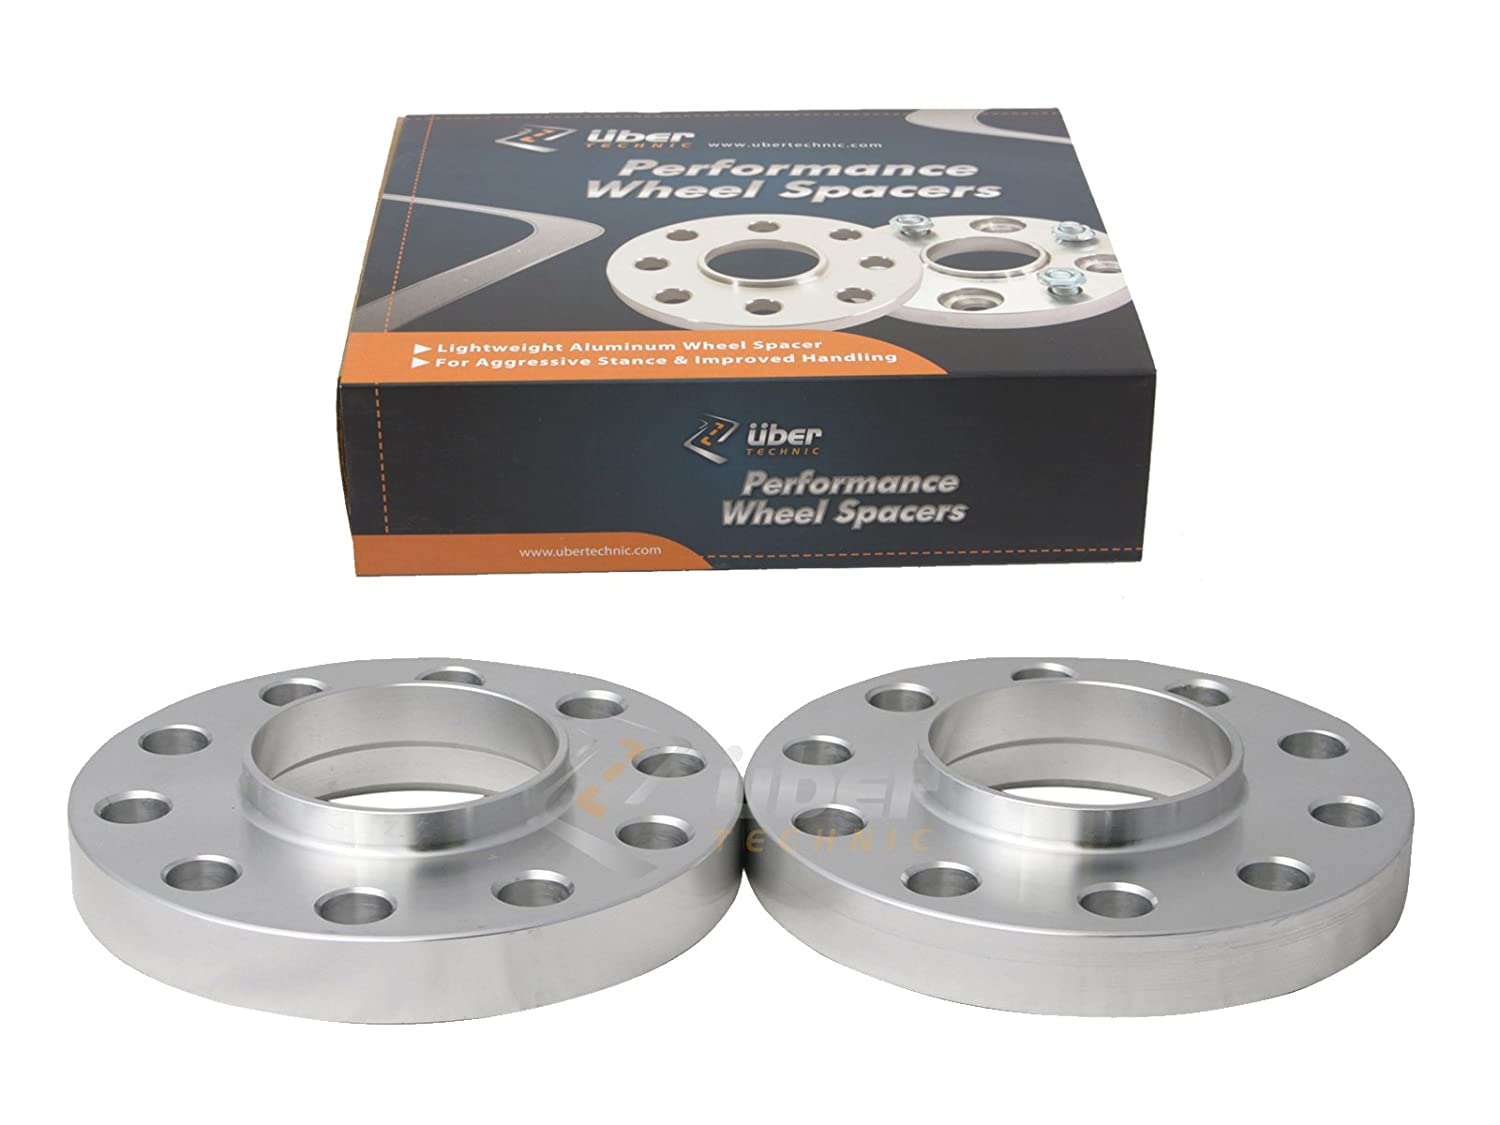 (2) 20mm (3/4') 5x120 Hubcentric Wheel Spacers (72.6/72.56 Bore) for many BMW Vehicles: 318i 320i 325i 328i 335i M3 428i 435i M4 525i 528i 530i 535i M5 Z3 Z4 640i 645ci E36 UberTechnic Precision European Motorwerks